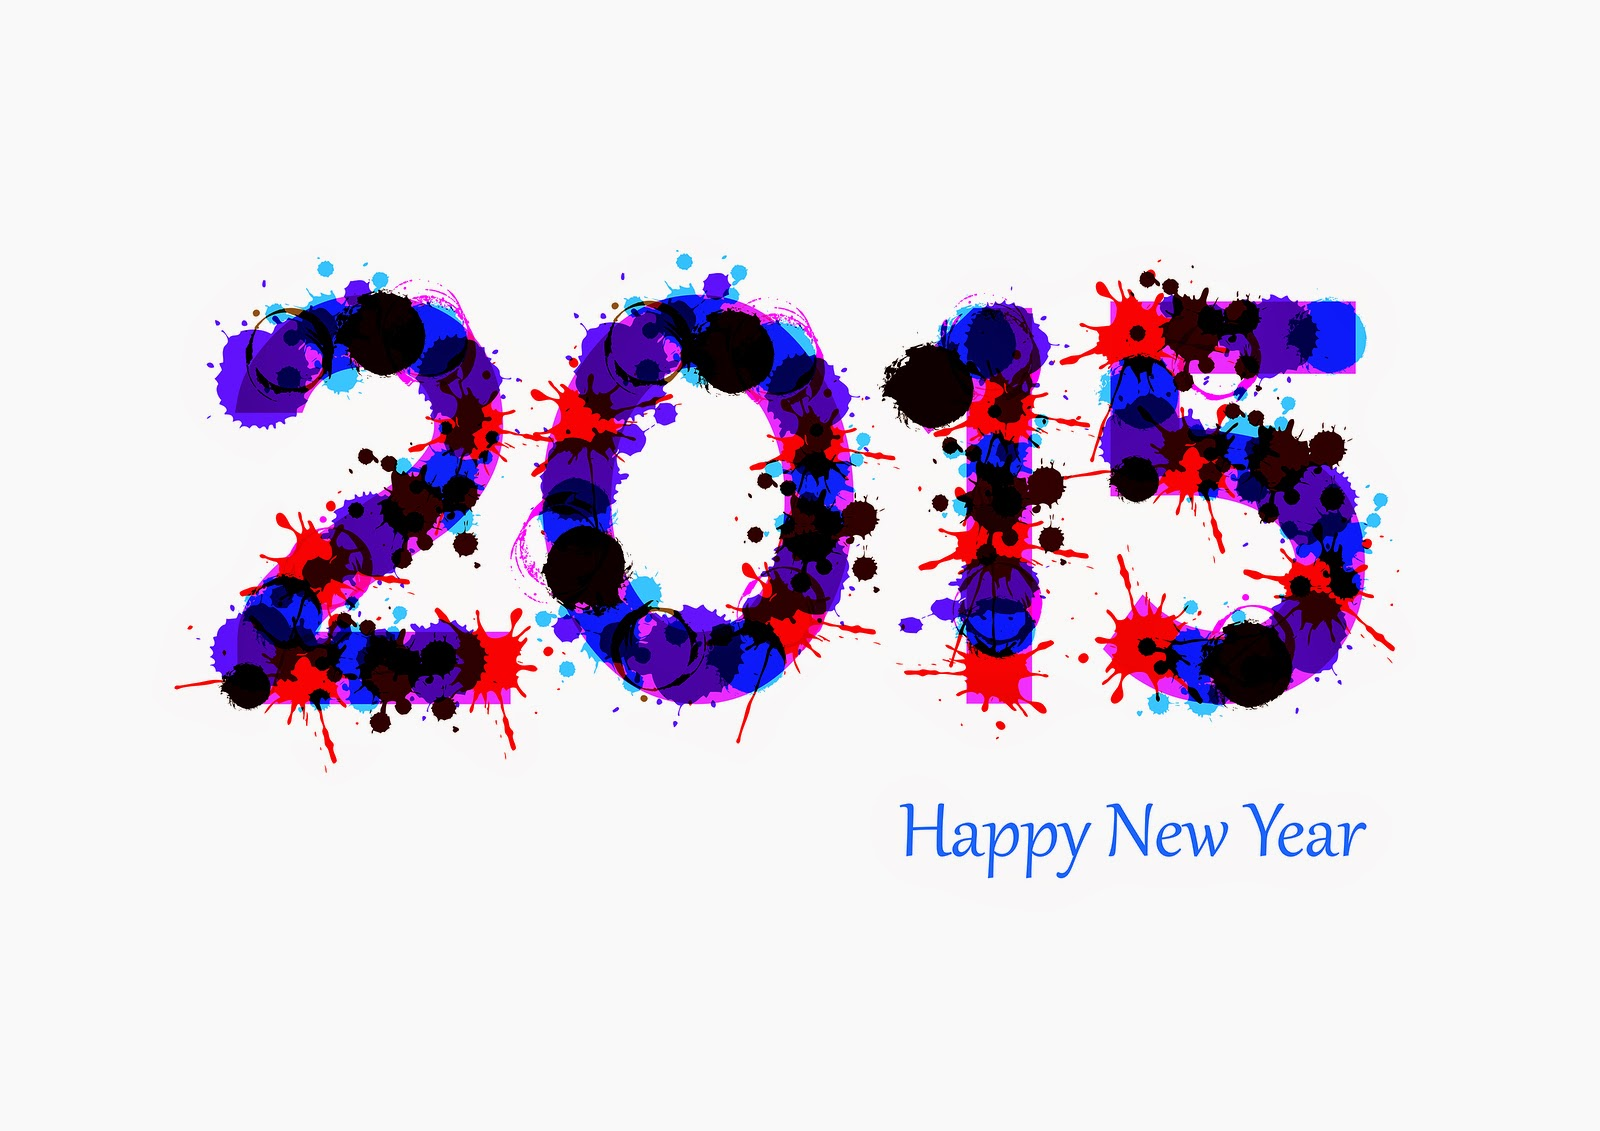 Formal New Year Greetings Message Happy New Year 2015